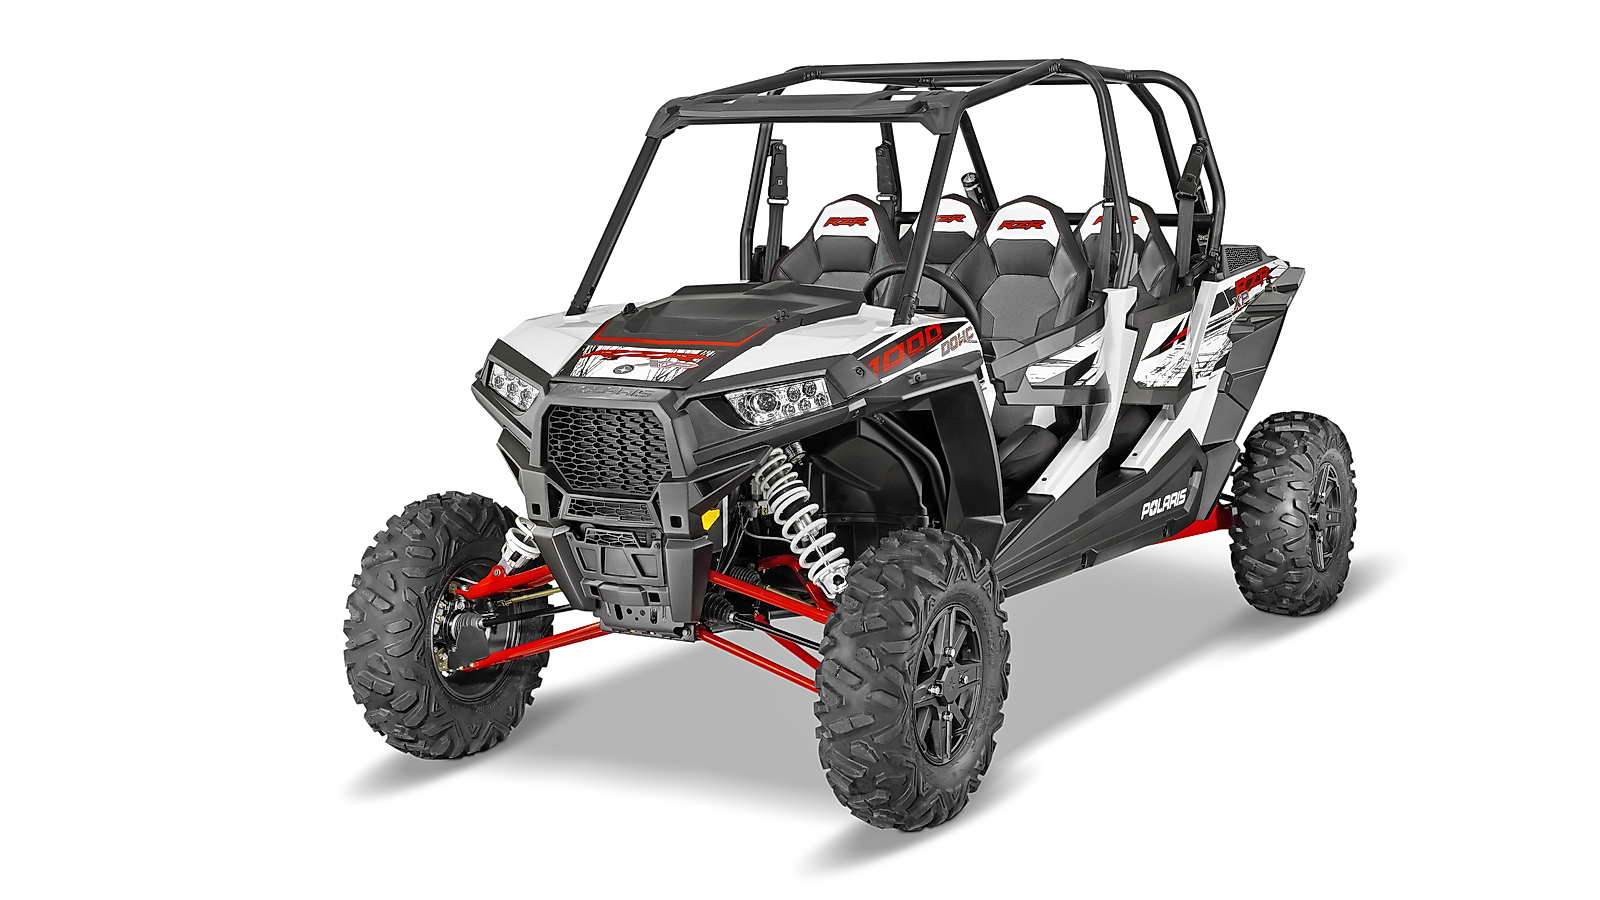 polaris rzr 1000 bing images. Black Bedroom Furniture Sets. Home Design Ideas